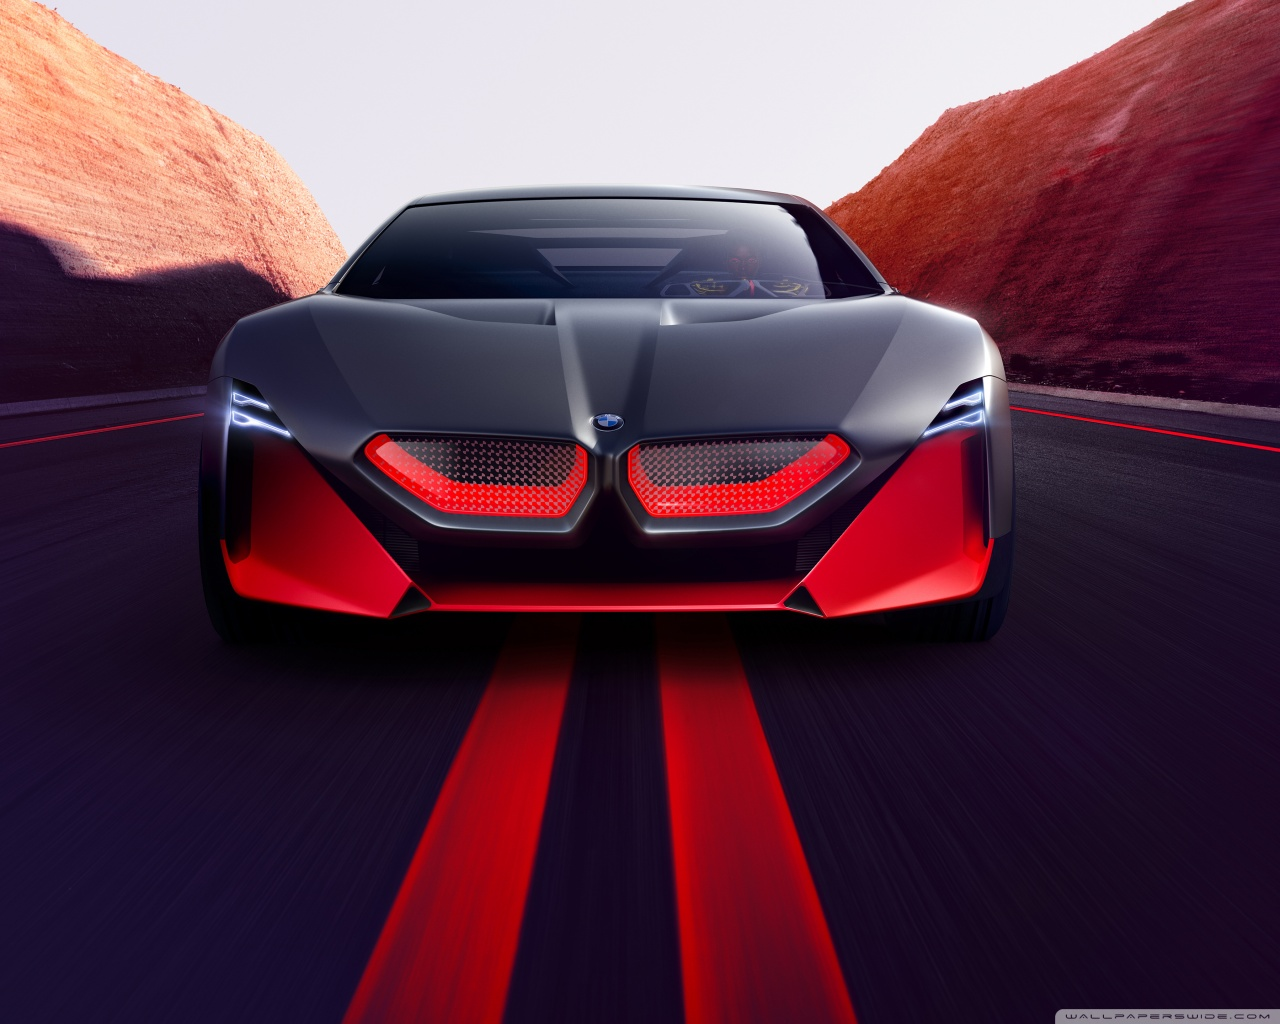 2019 BMW Vision M NEXT Sports Car Road 4K HD Desktop Wallpaper 1280x1024